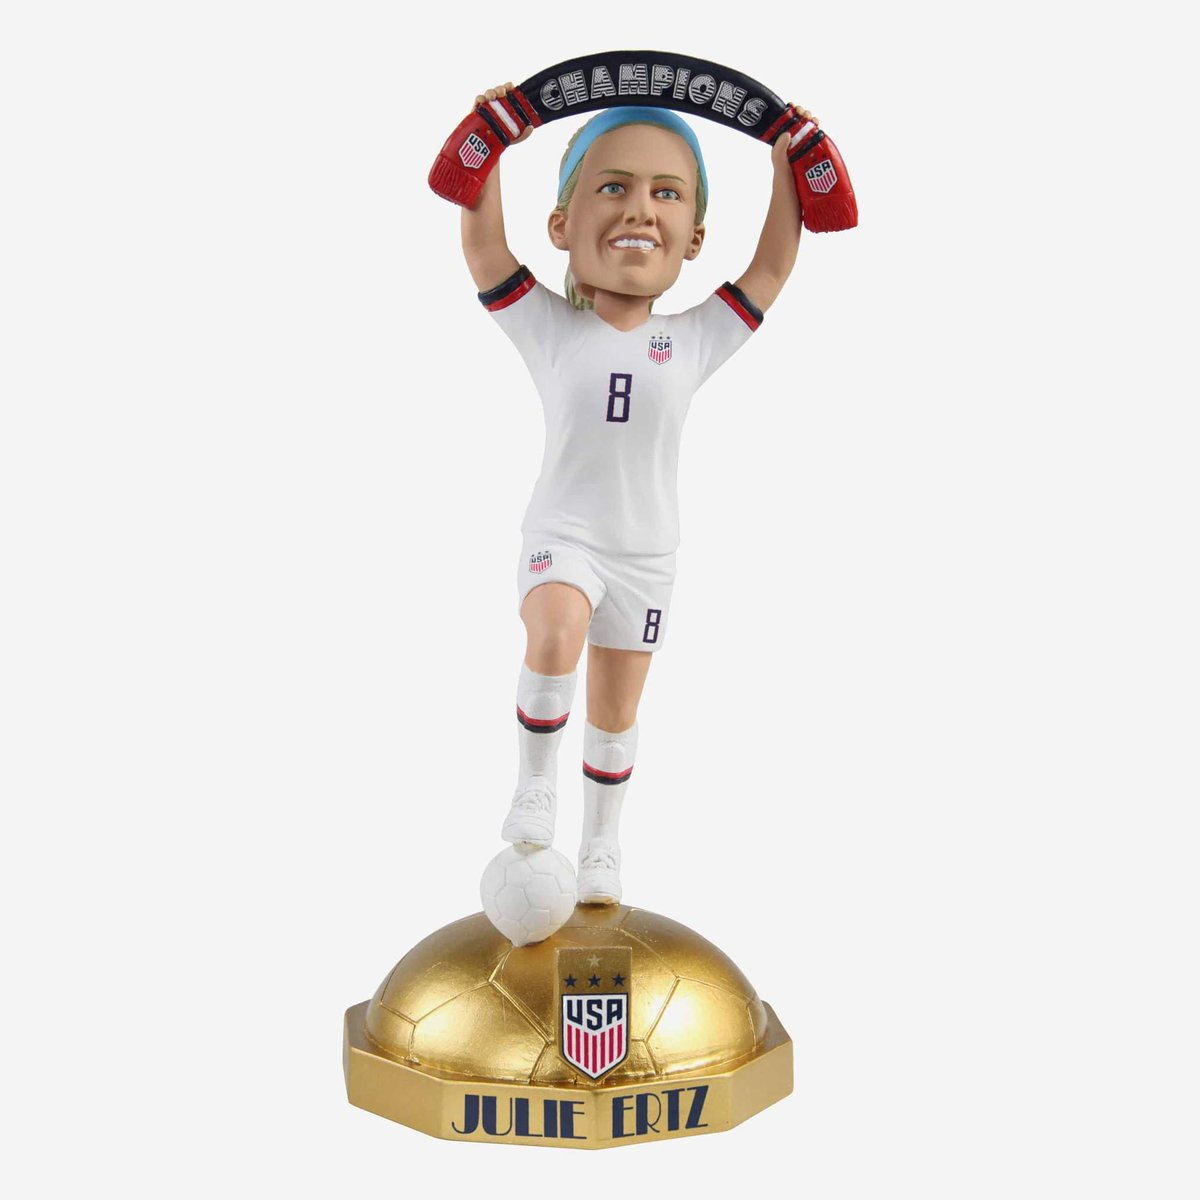 EQZ Extra subscribers: Today is your last show to enter to win these sweet bobbleheads from @FOCOusa! We'll be drawing and announcing a winner this week.  https://t.co/hWnMiPWWI0  #USWNT https://t.co/kHlFQ1toH9